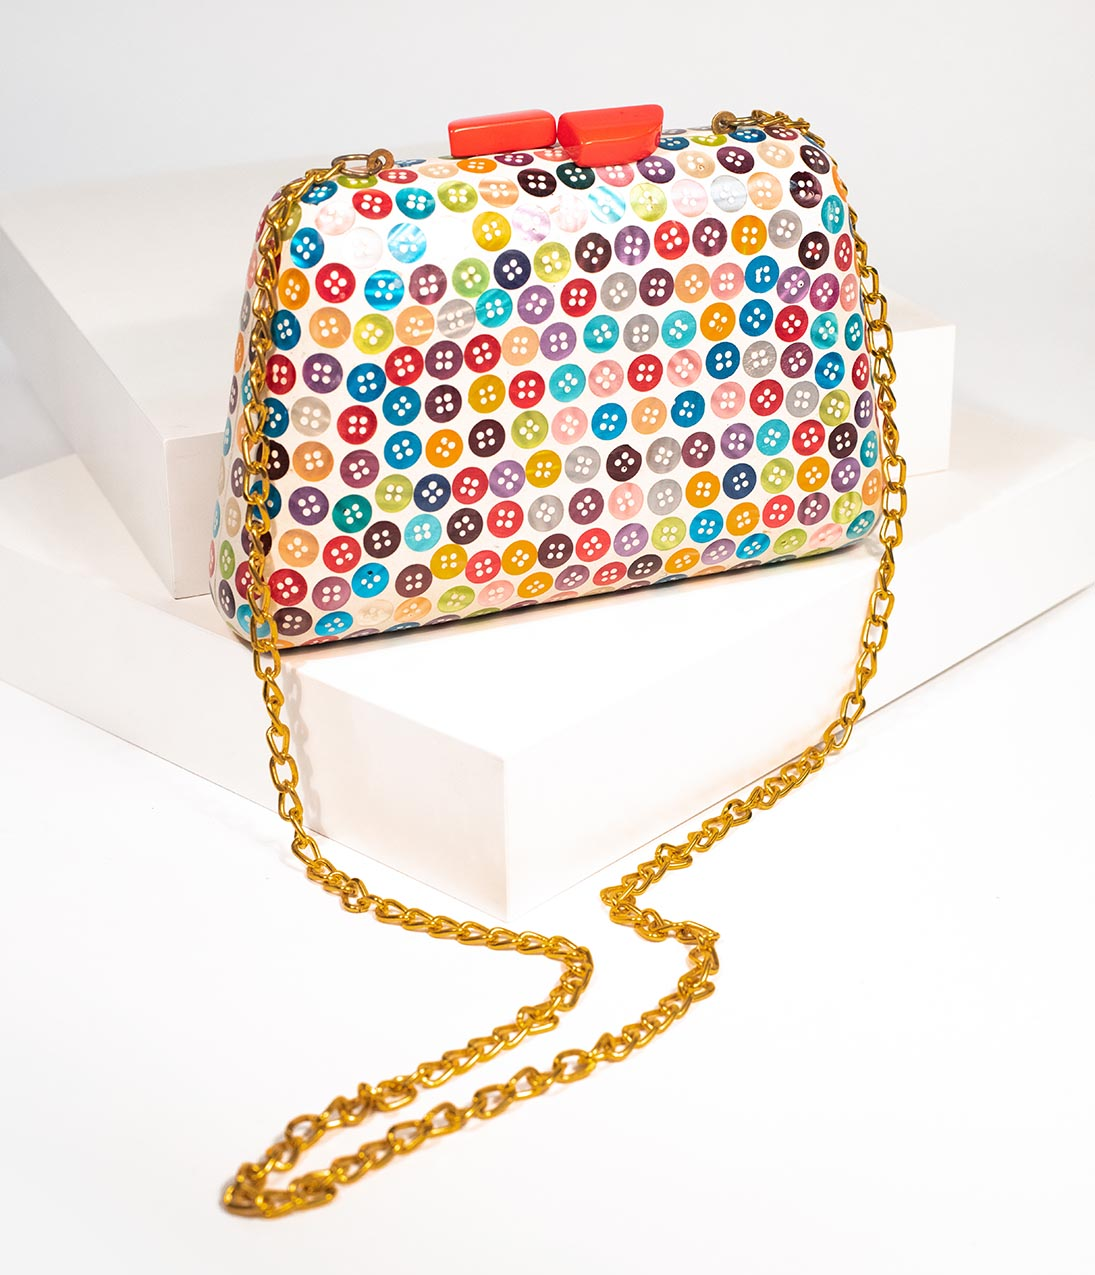 1950s Handbags, Purses, and Evening Bag Styles Vintage Style Multicolor Button Hard Wooden Clutch $72.00 AT vintagedancer.com